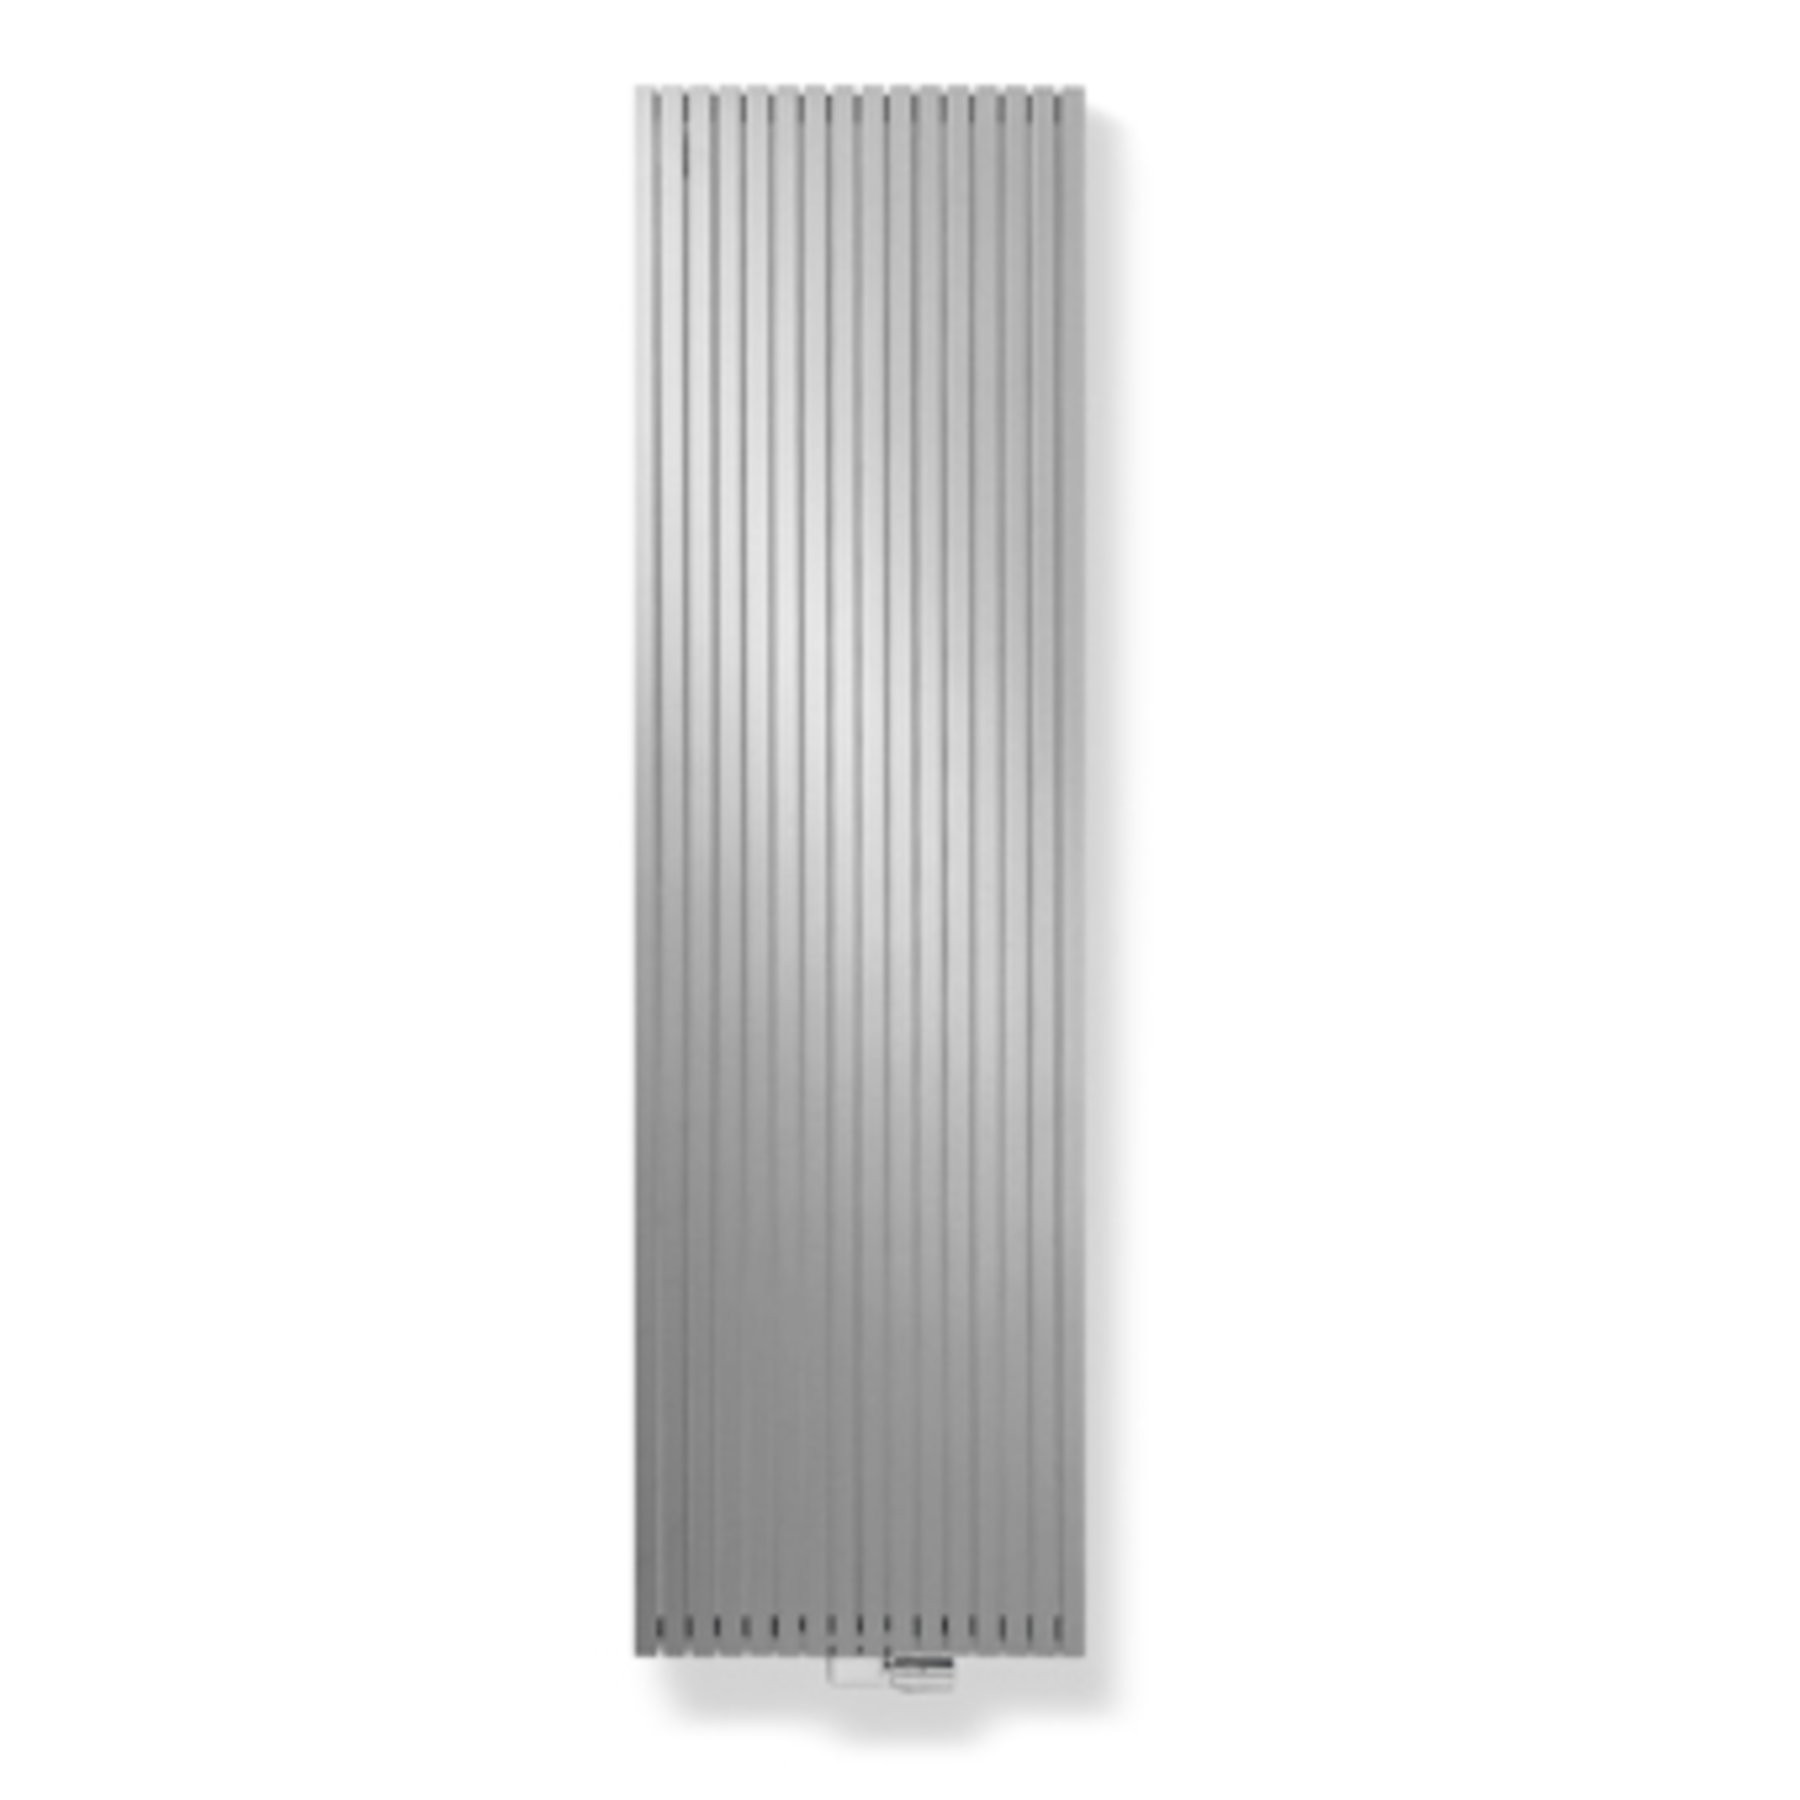 Vasco Carre Plan CPVN2 designradiator verticaal dubbel 1800x295mm 1174 watt wit alu